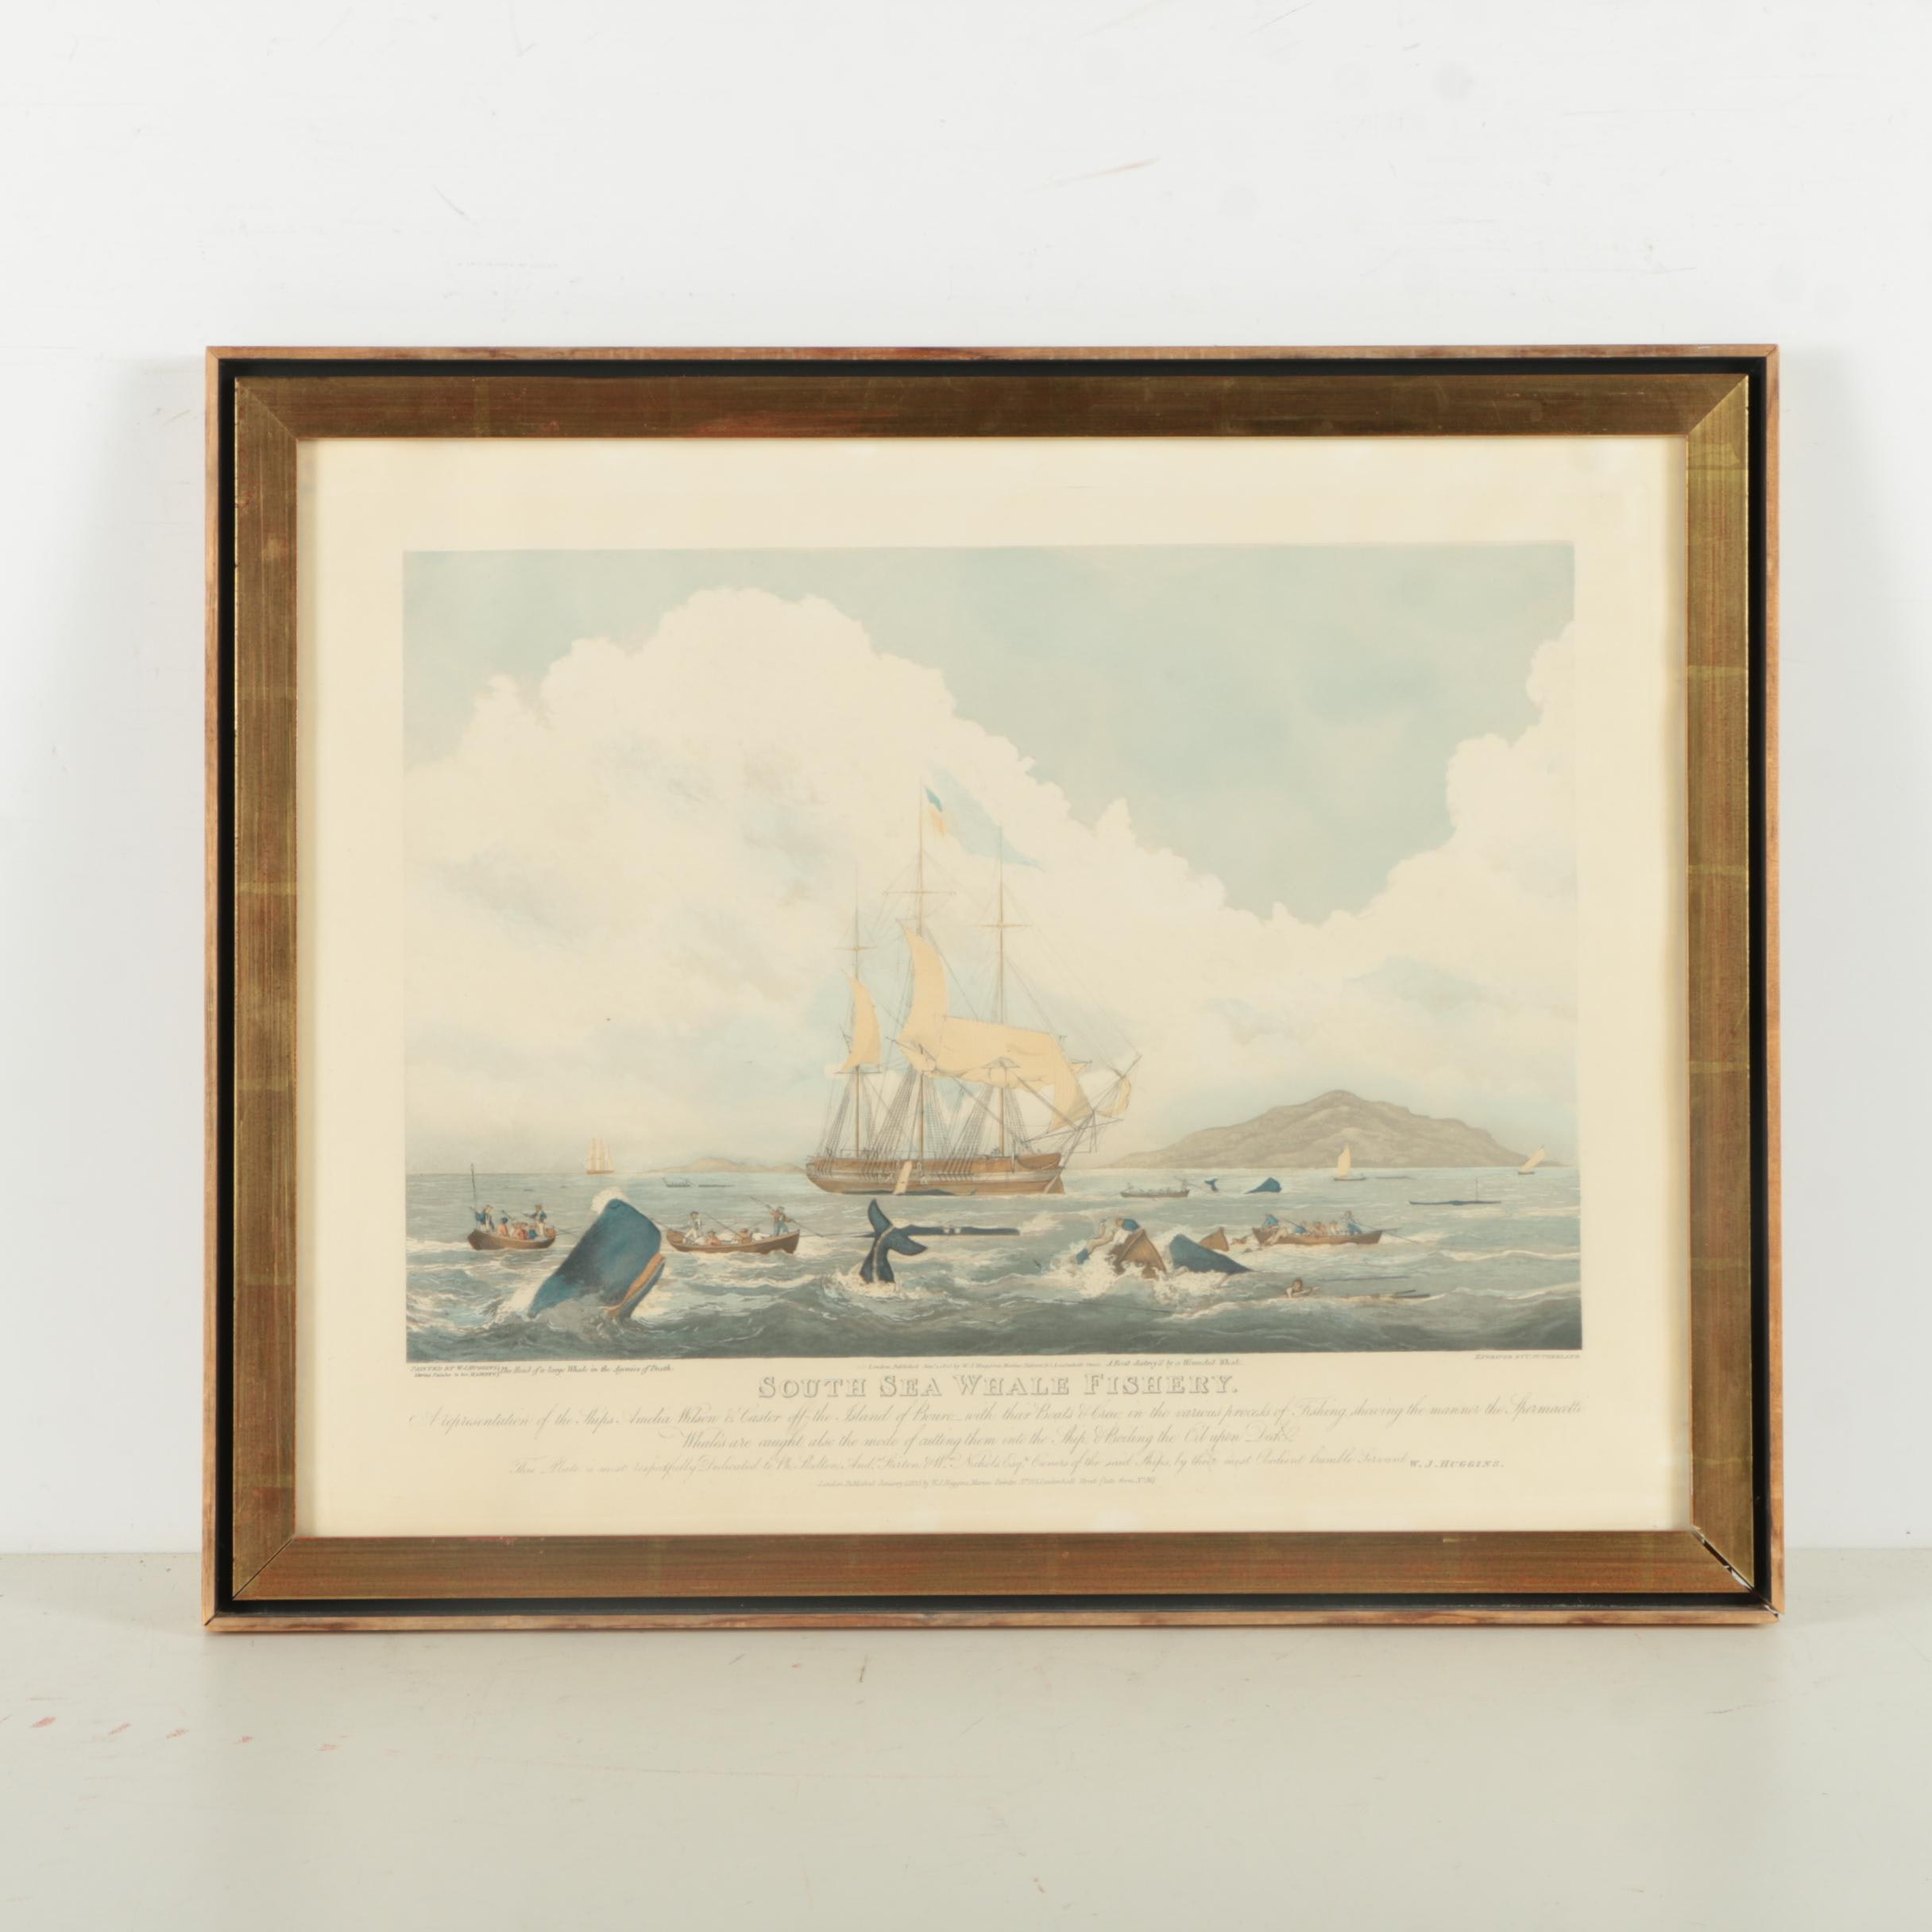 Hand Colored Aquatint after W. J. Huggins Painting